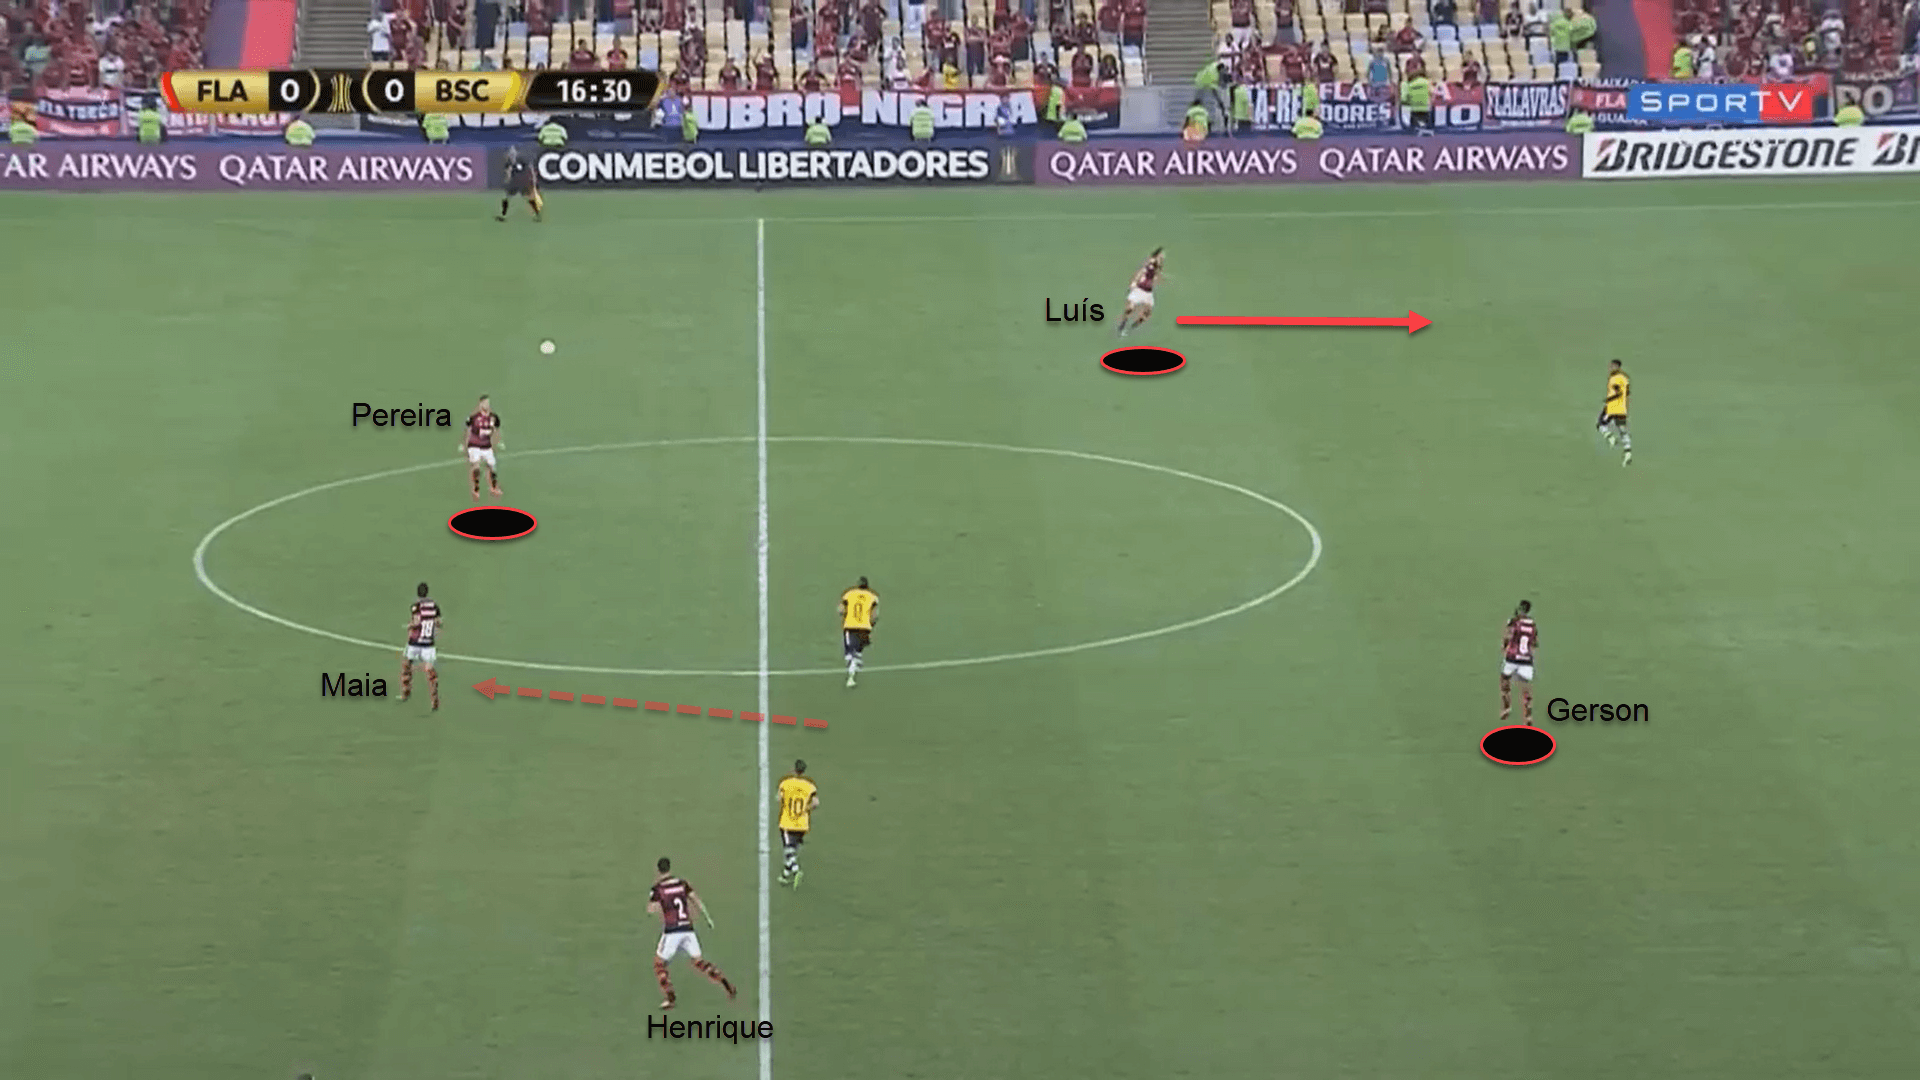 Copa Libertadores 2019/20: Flamengo vs Barcelona SC - tactical analysis tactics